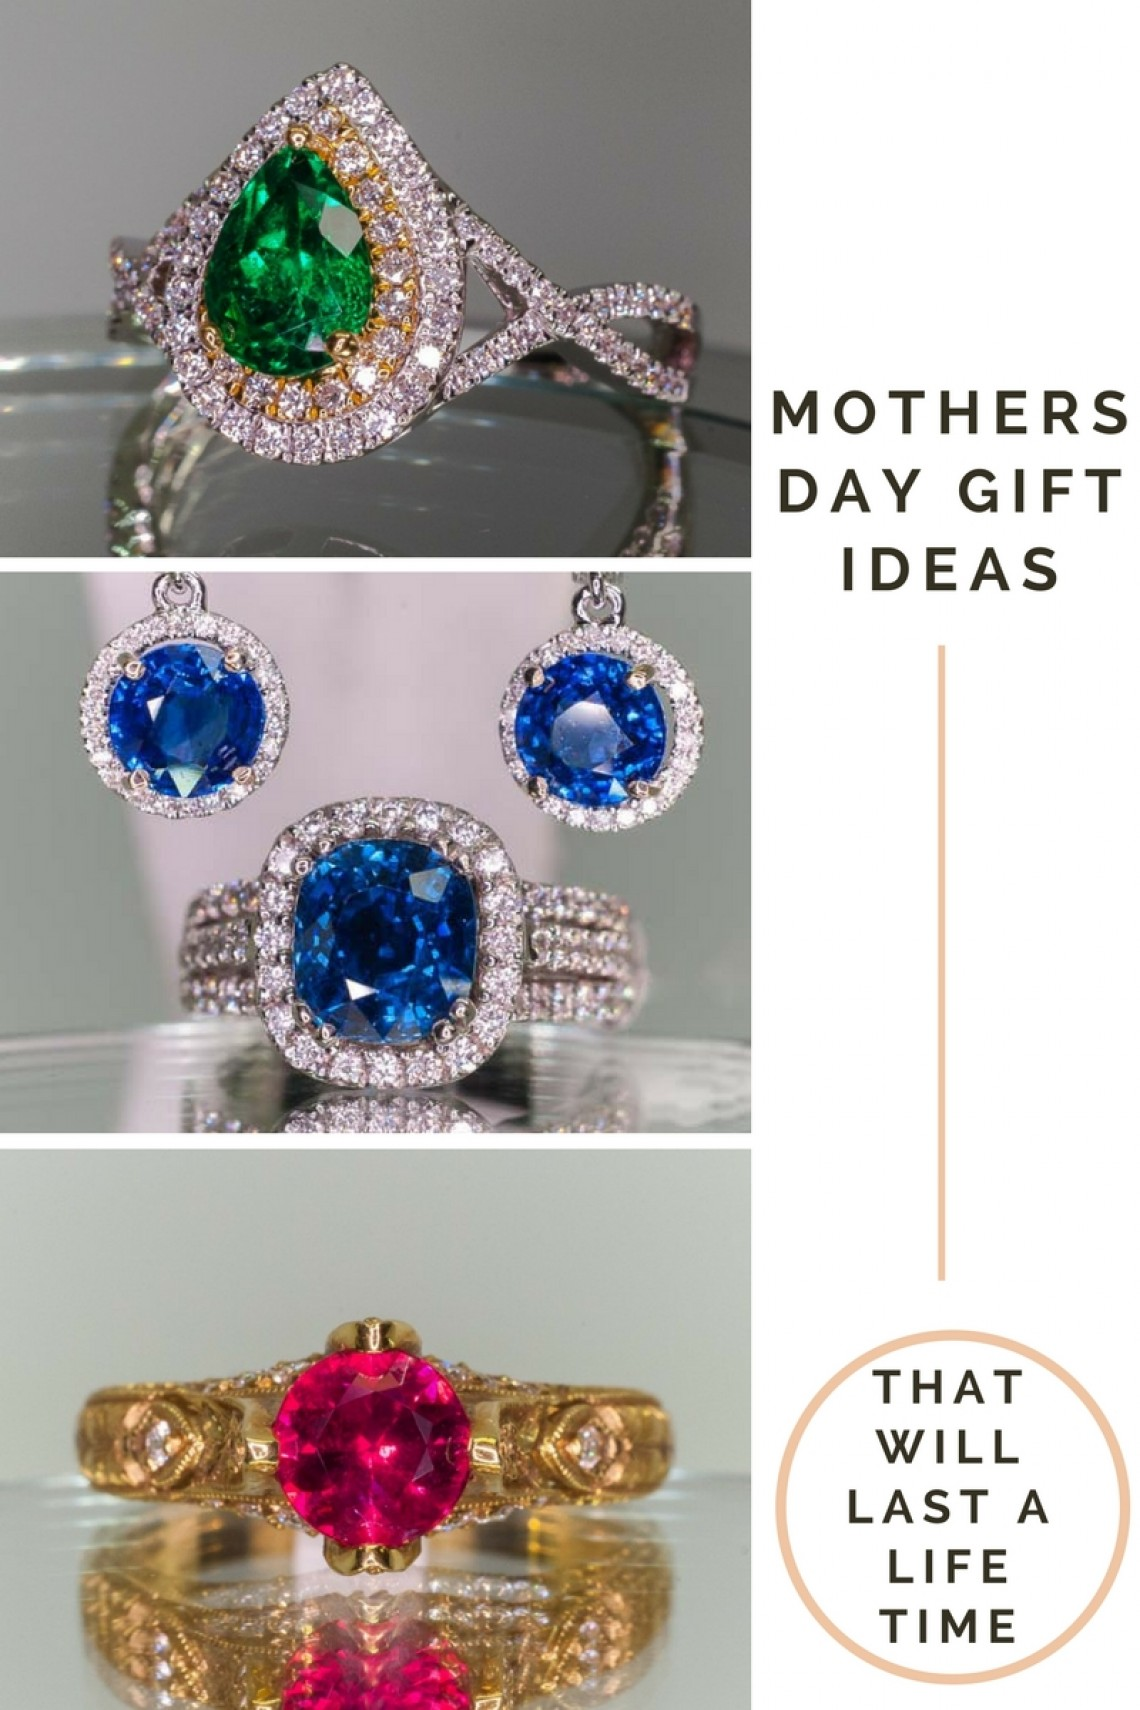 Spoil Your Mom - Mothers Day Gift That Last a Lifetime